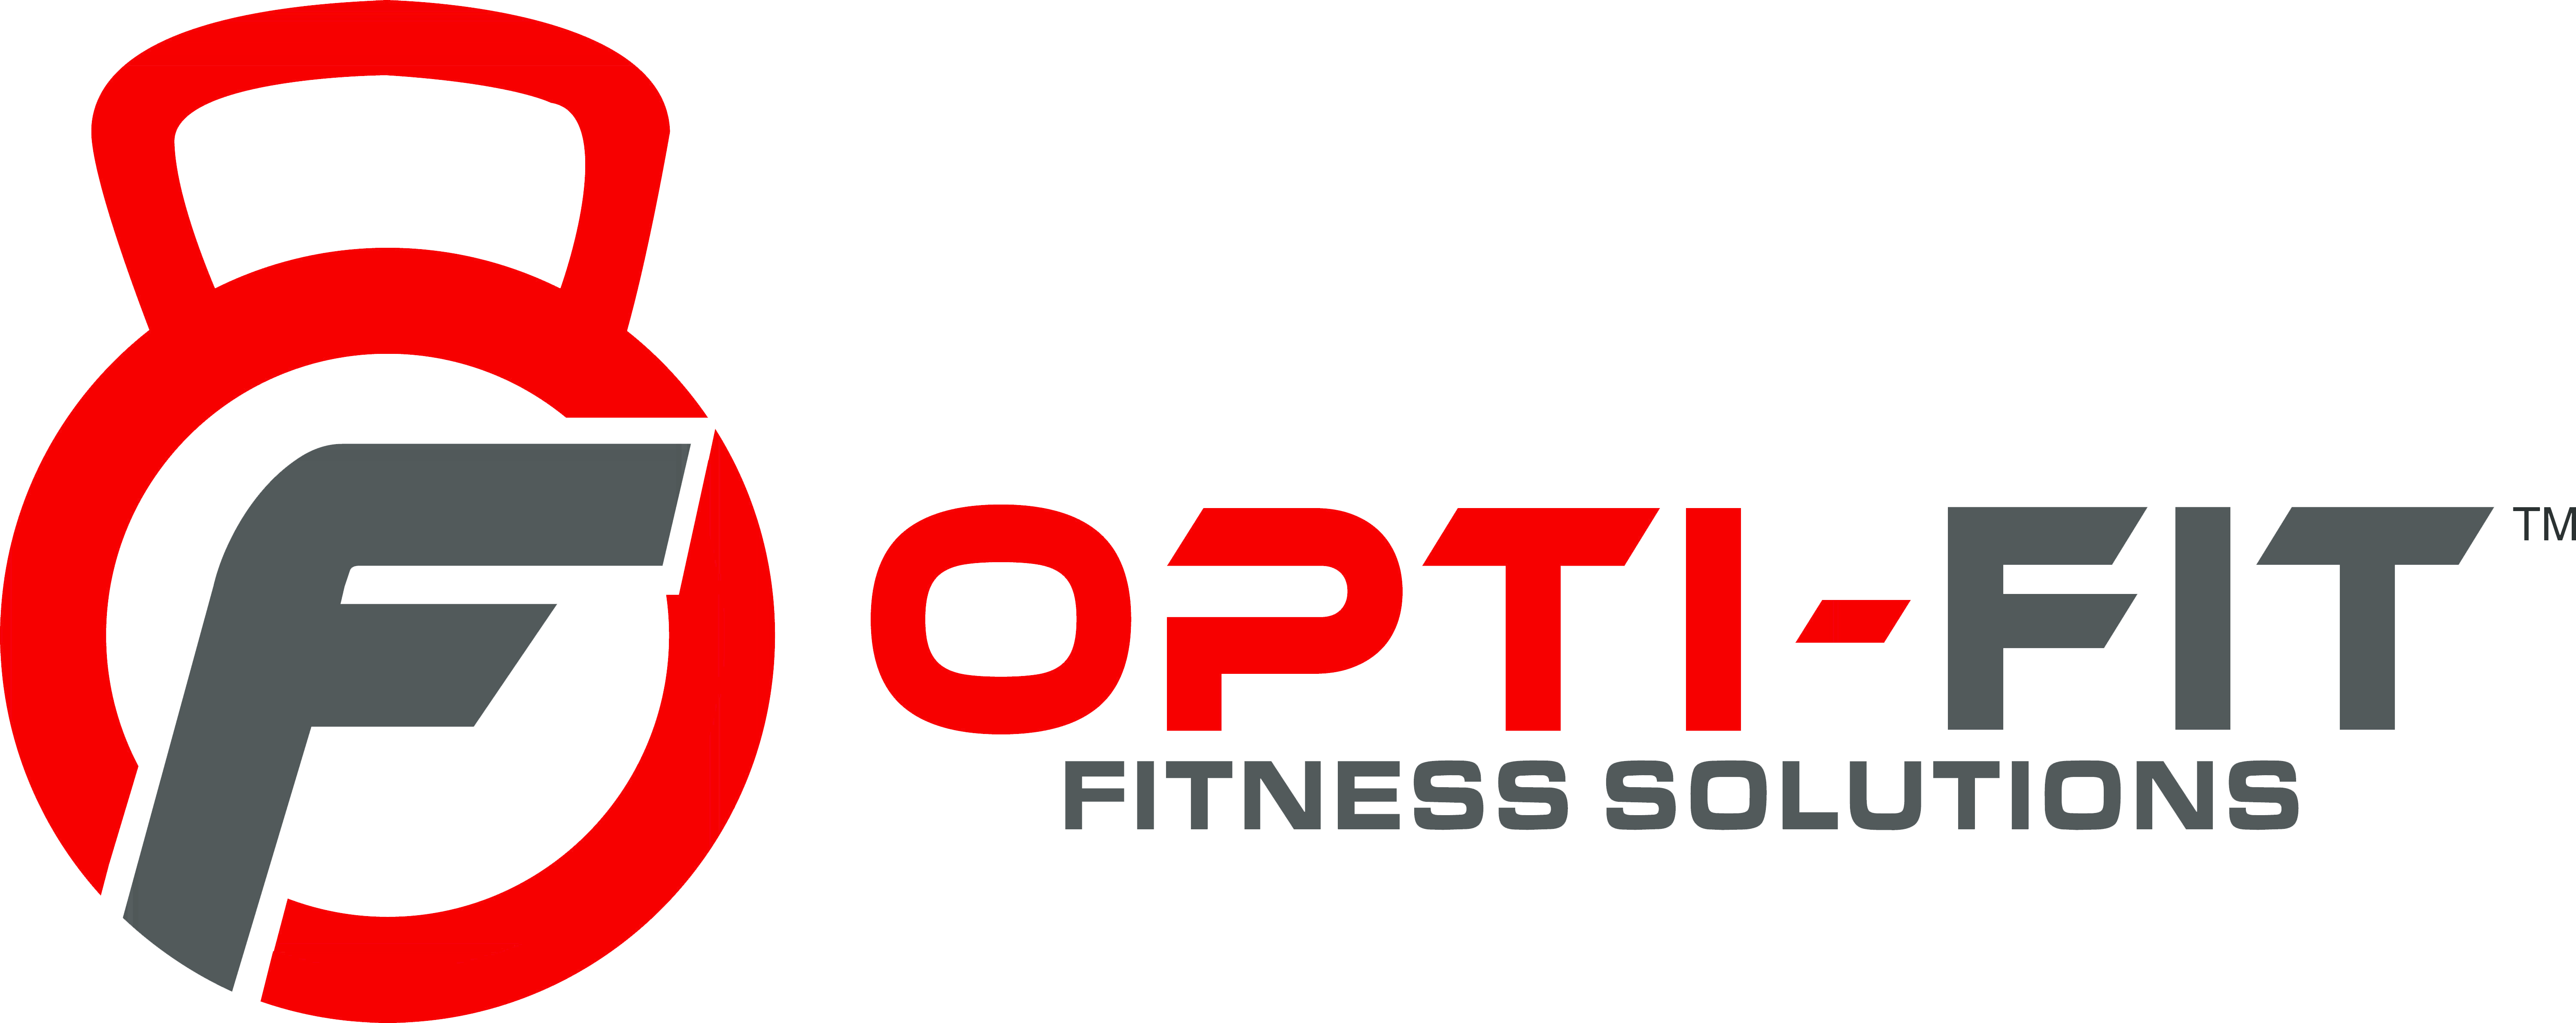 Fitness Center Design & Consultation | Opti-Fit